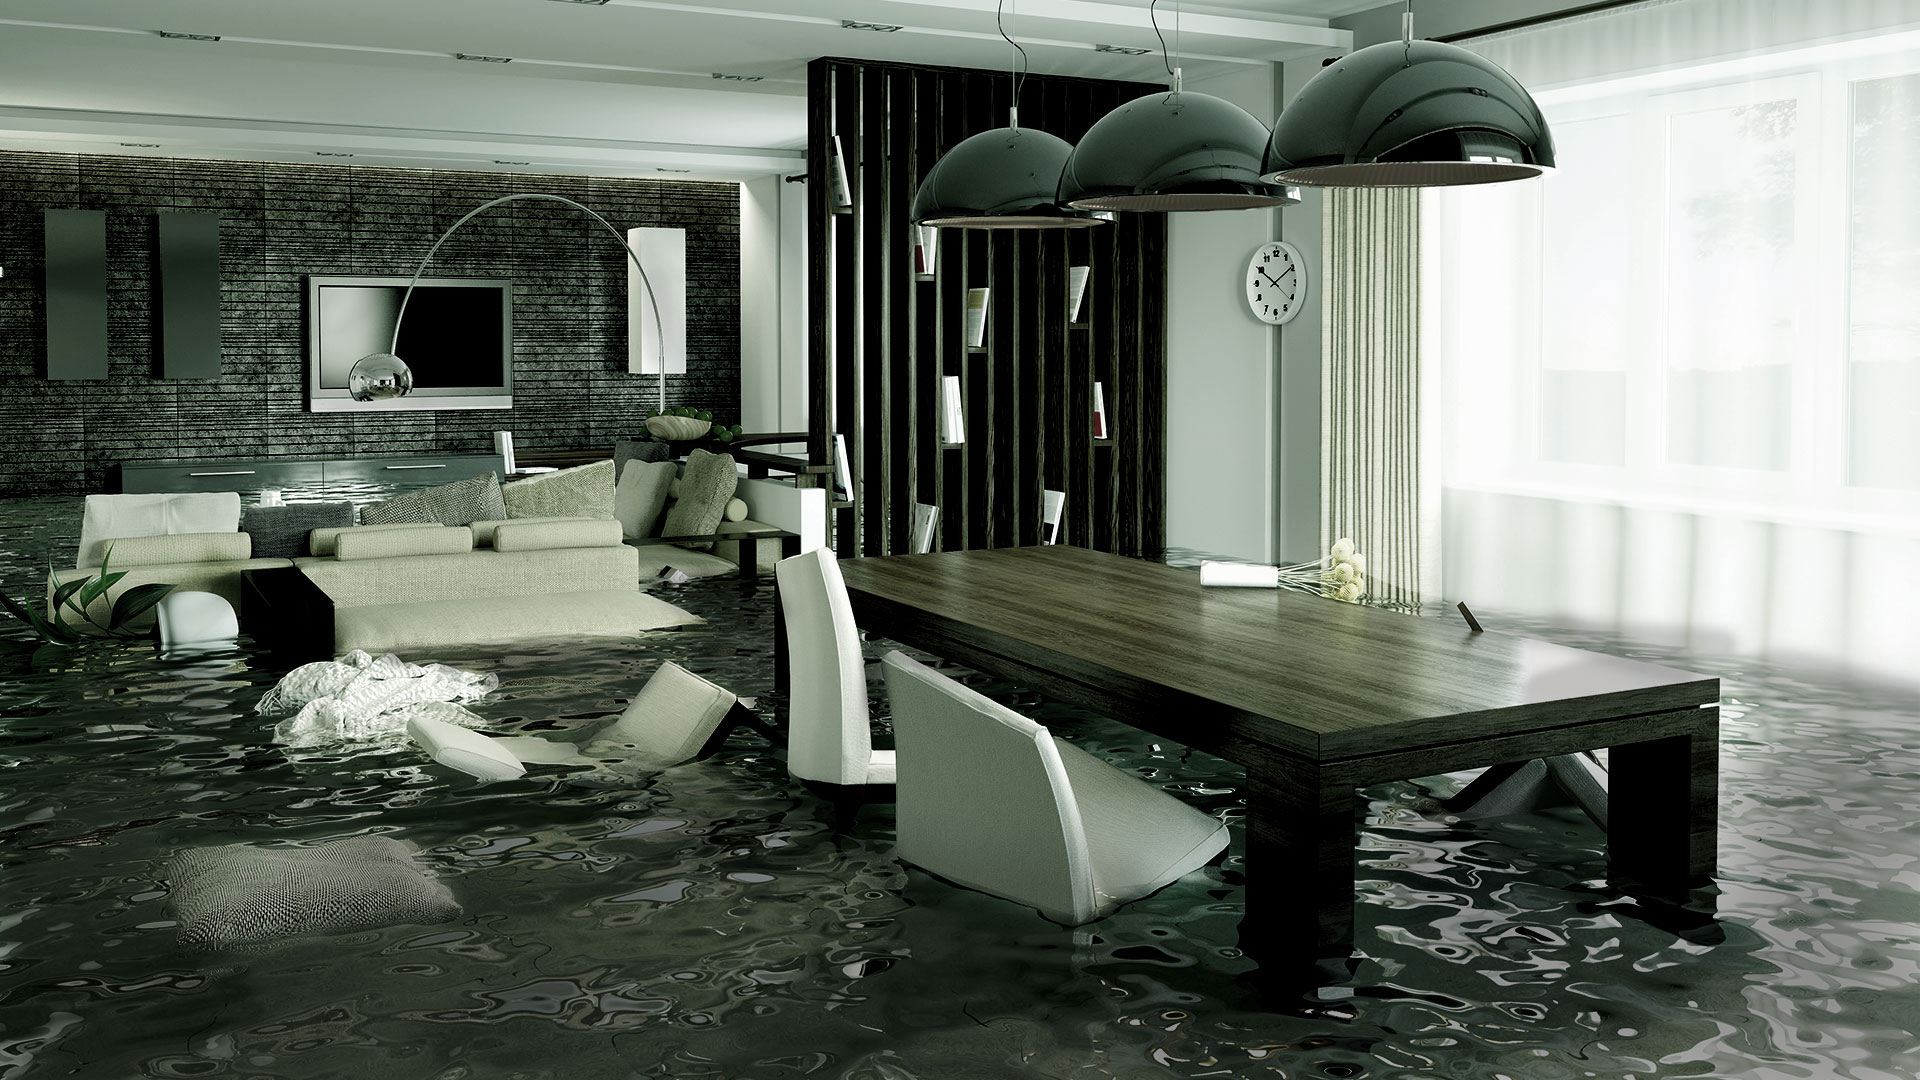 Andover Water Damage Restoration